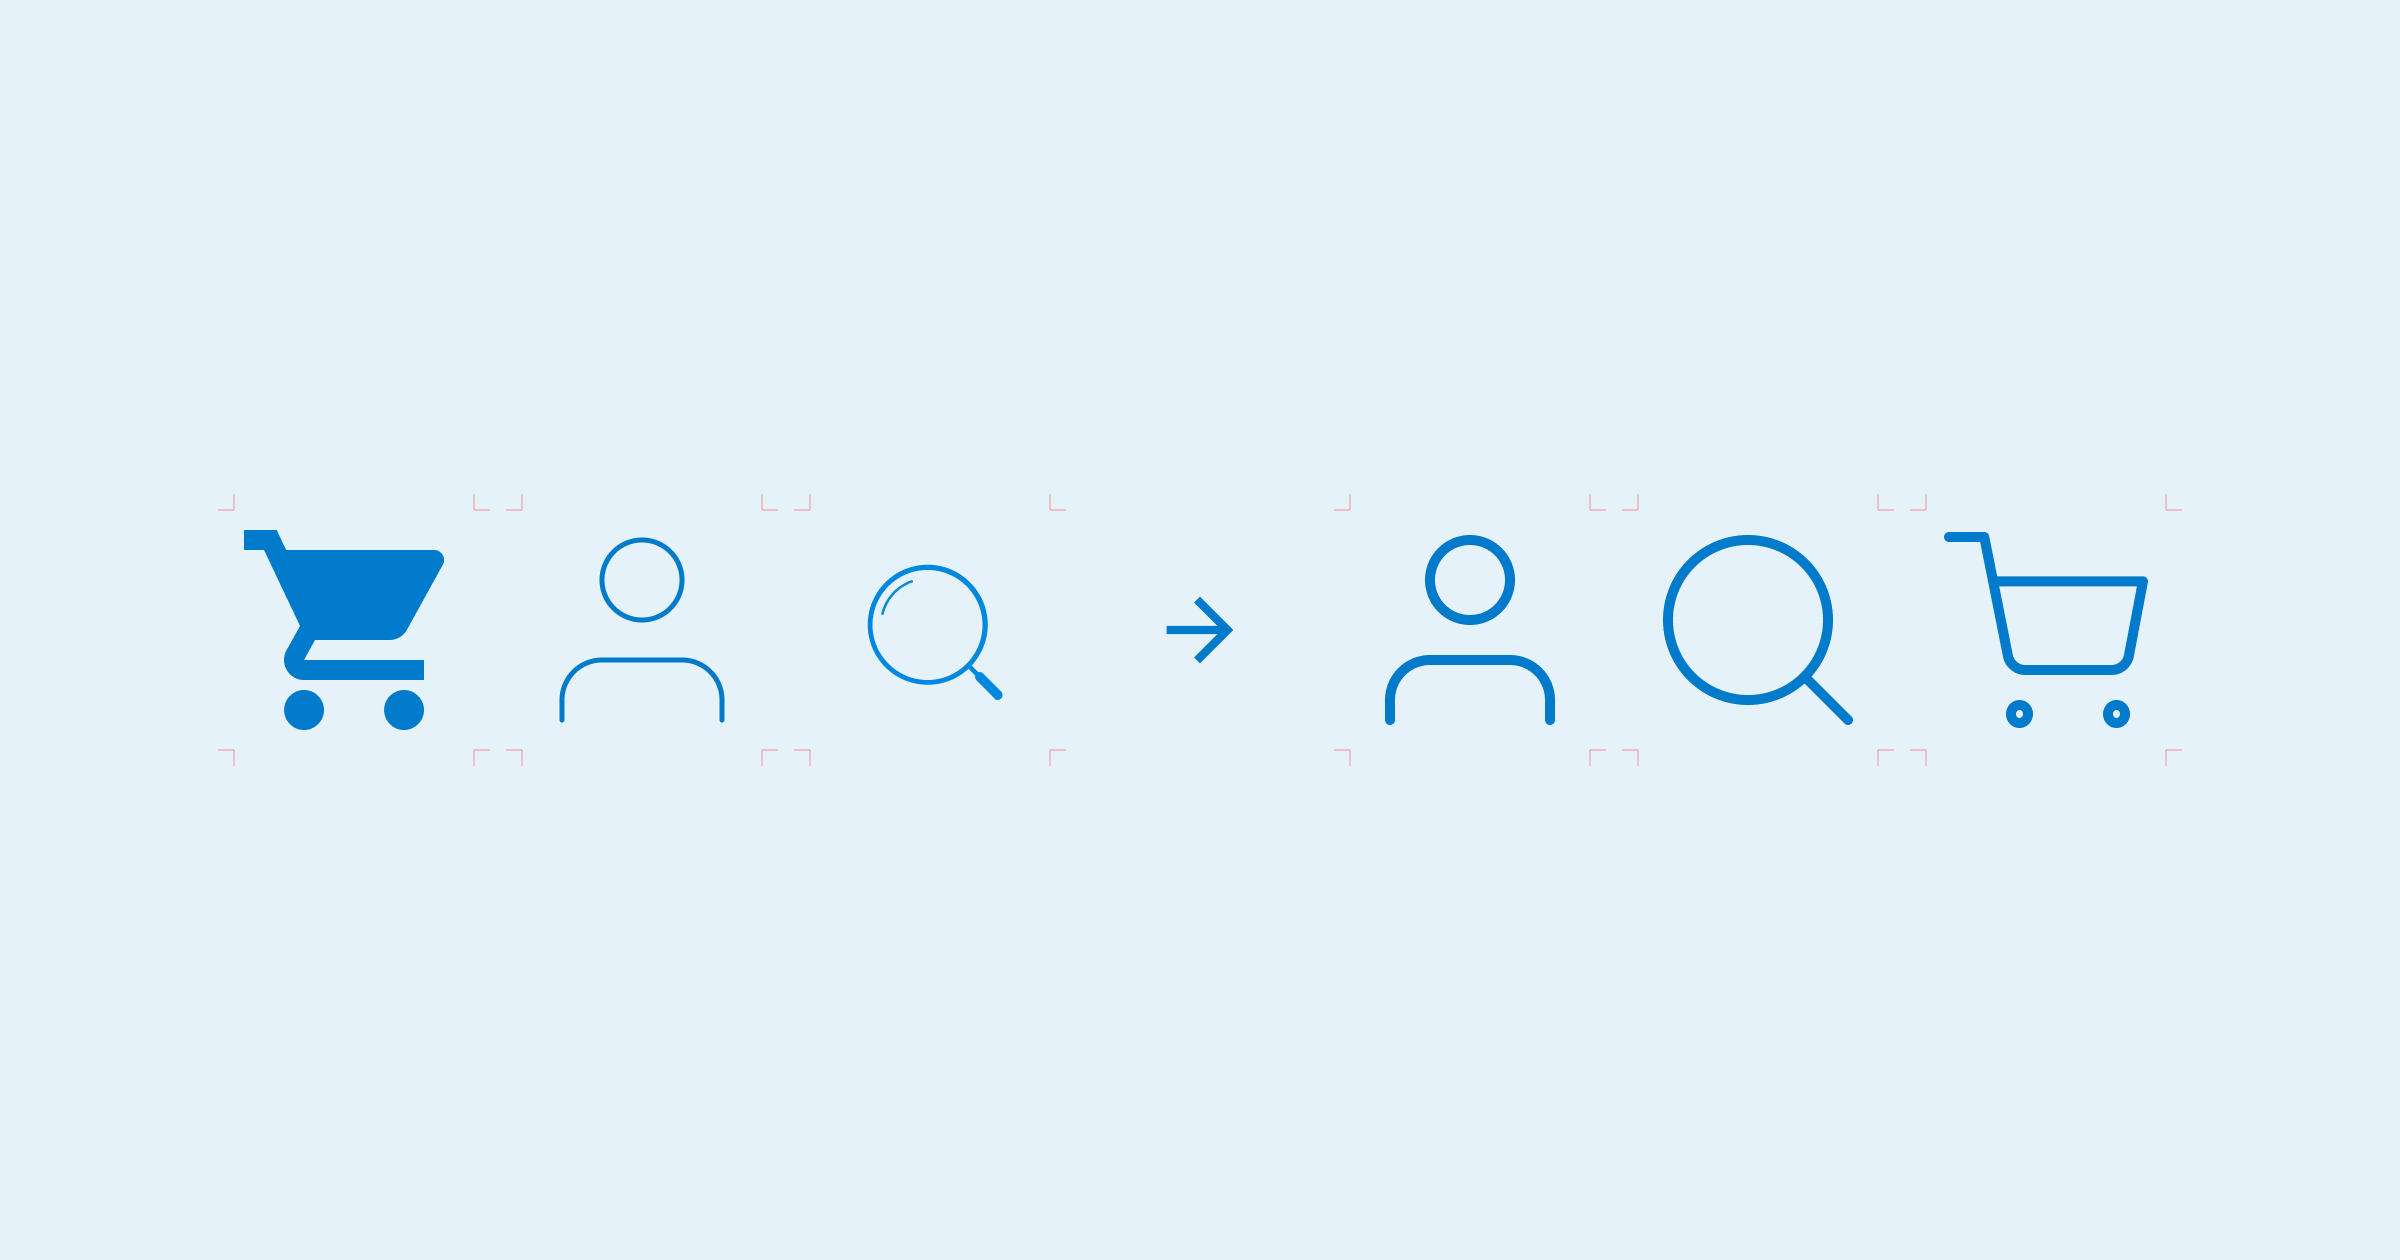 Icons of different styles (i.e. filled or outlined, line width and padding) versus icons with the same style.